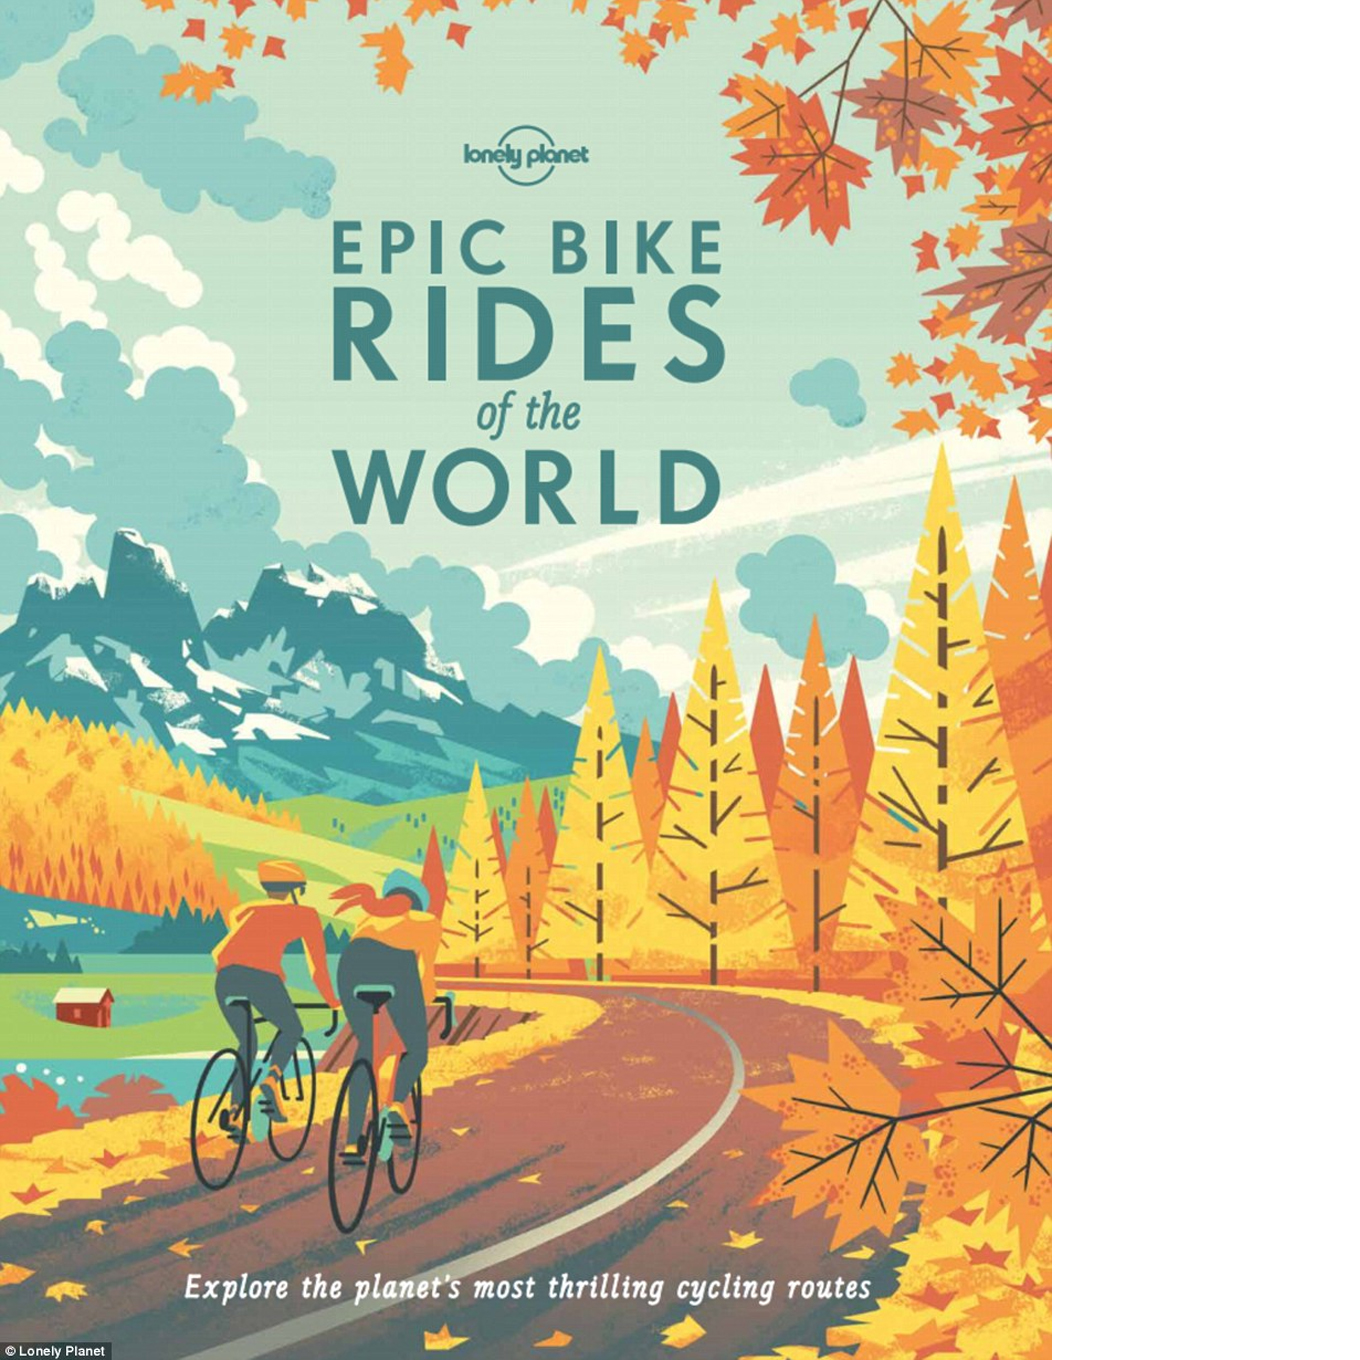 Epic Bike Rides of the World  (Lonely Planet) September 20, 2016  Discover 200 of the best places to ride a bike. From family-friendly, sightseeing urban rides to epic adventures off the beaten track. Destinations range from France and Italy, for the world's great bike races, to the wilds of Mongolia and Patagonia. These journeys will inspire - whether you are an experienced cyclist or just getting started.    $17.30 Kindle    |    $23.12 Hardcover